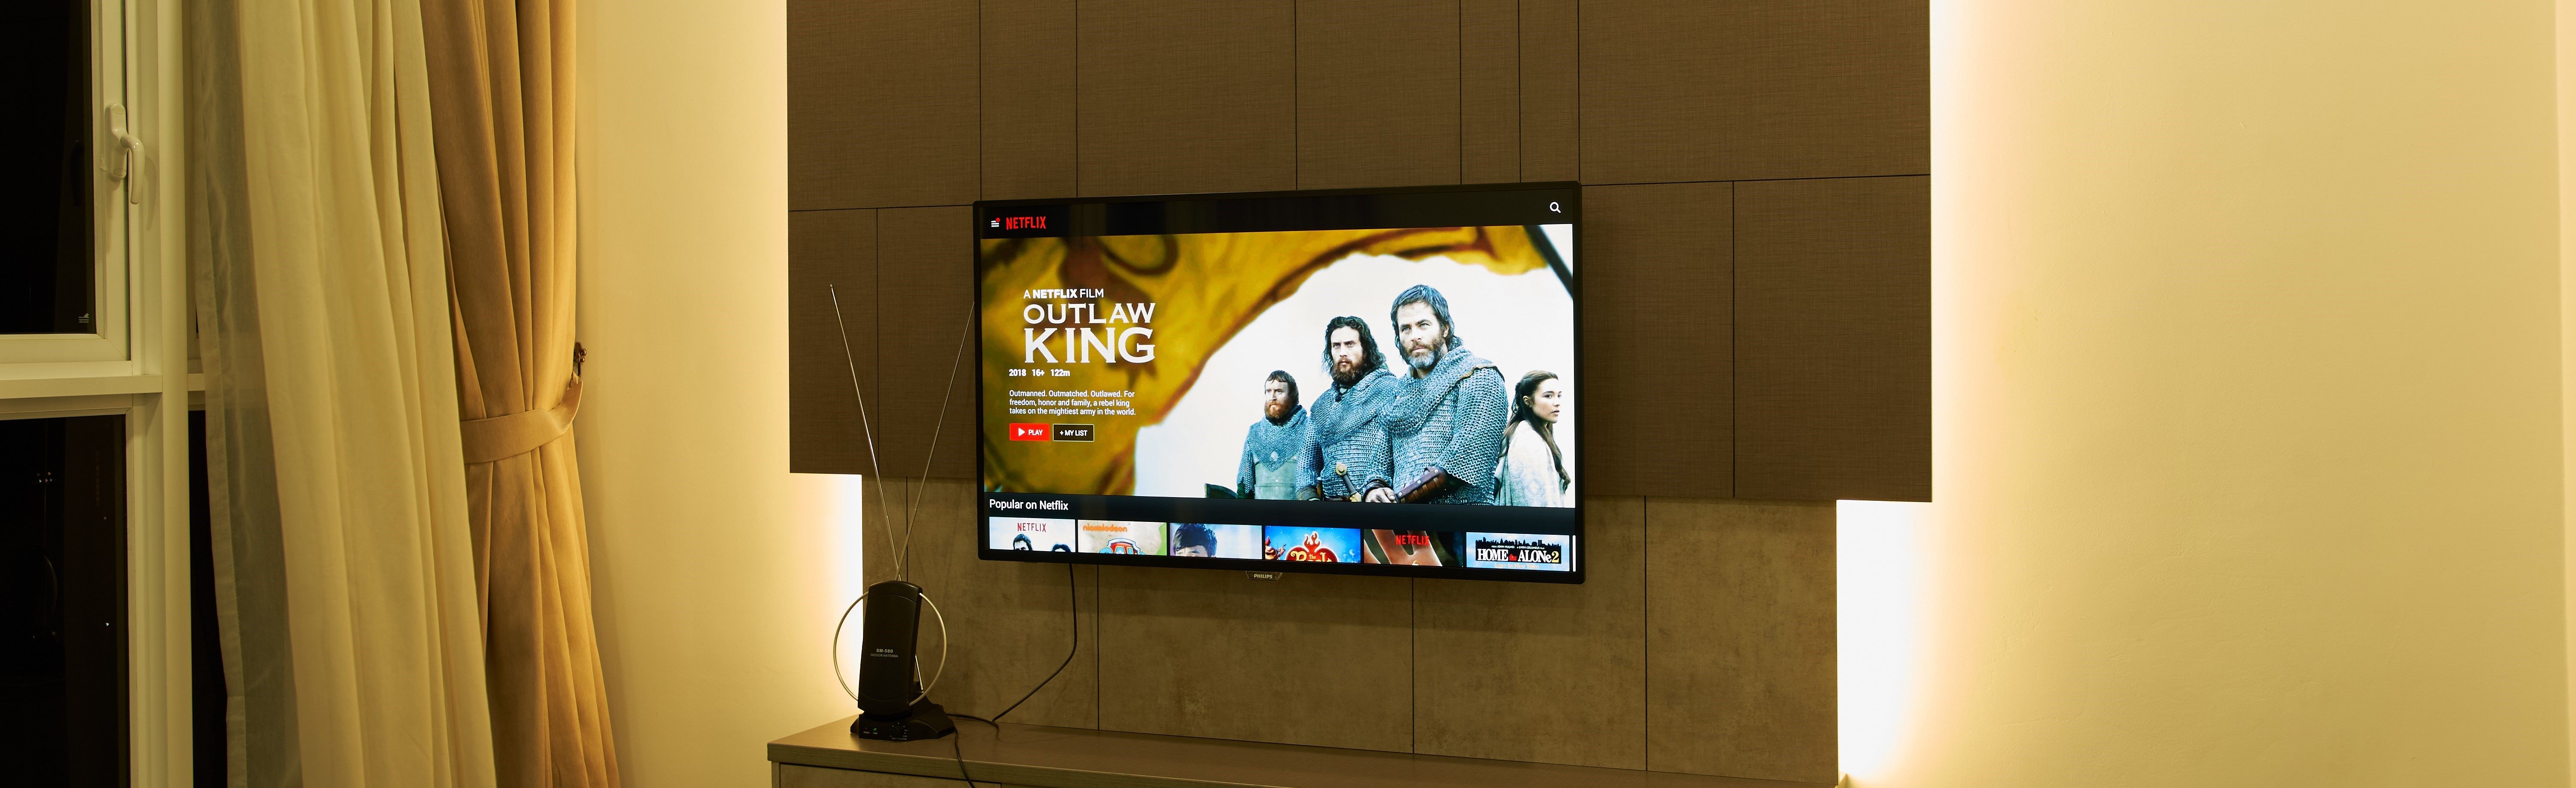 Television showing a trailer for The Outlaw King